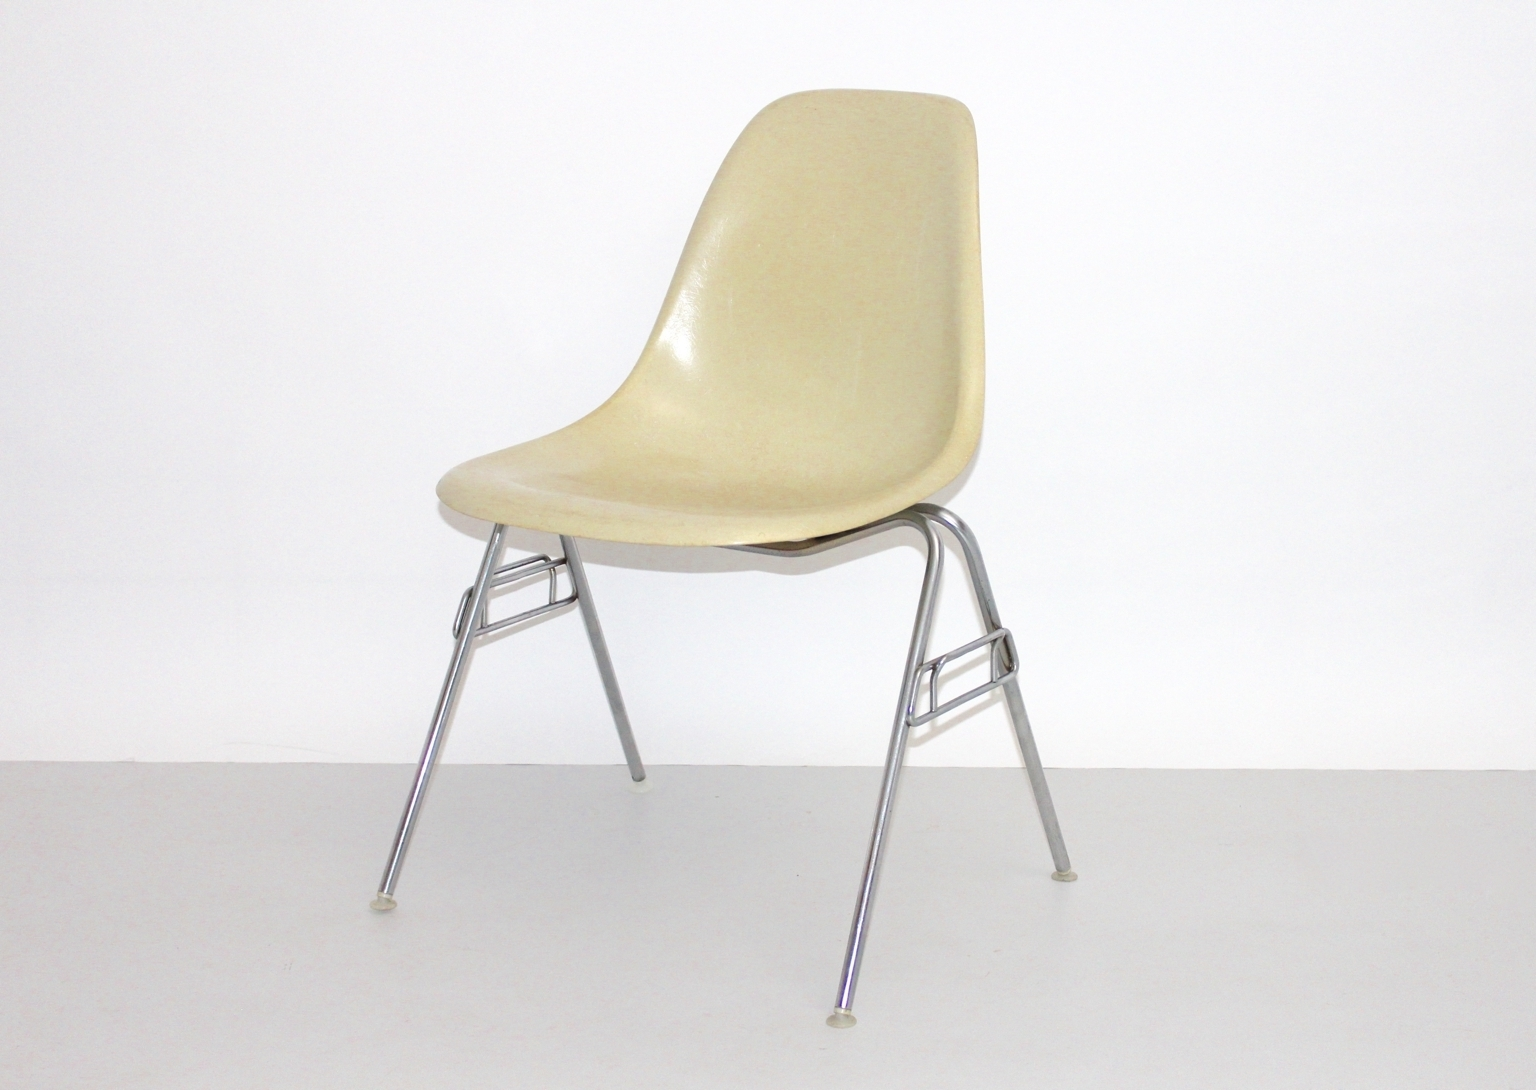 Vintage Model Dss N Fiberglass Chairray & Charles Eames For Within 2018 Eames Chaises (View 10 of 15)